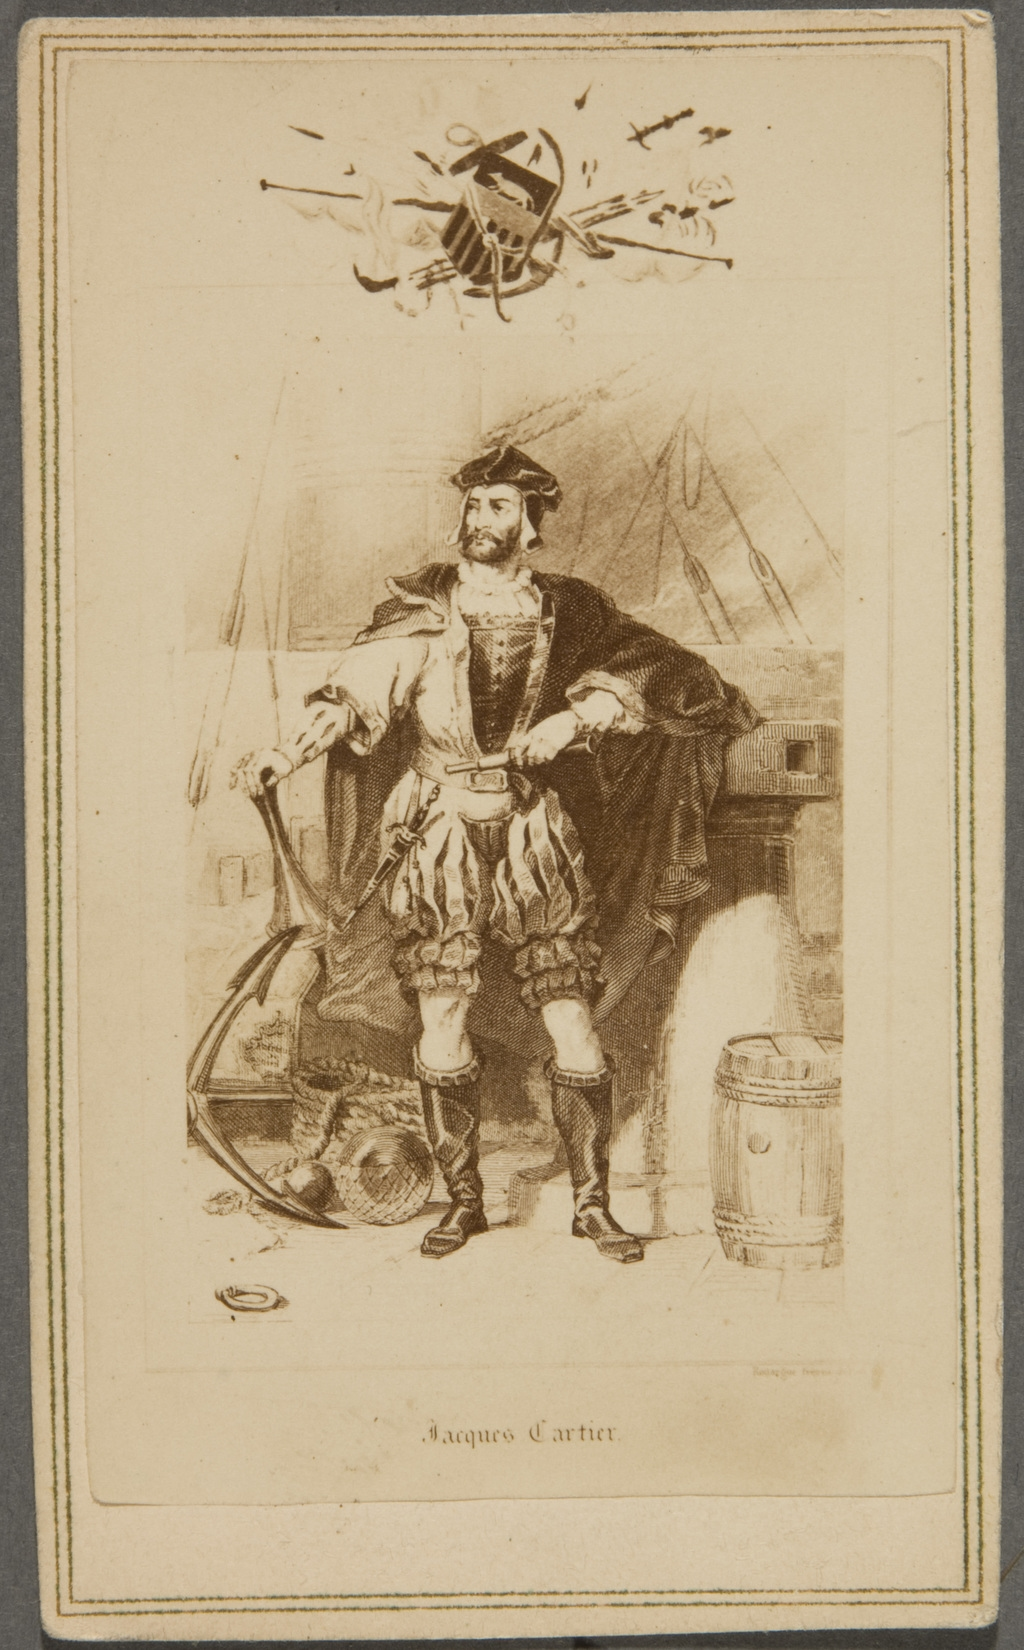 Jacques Cartier. Photographie d'une gravure de Mayer & Co.